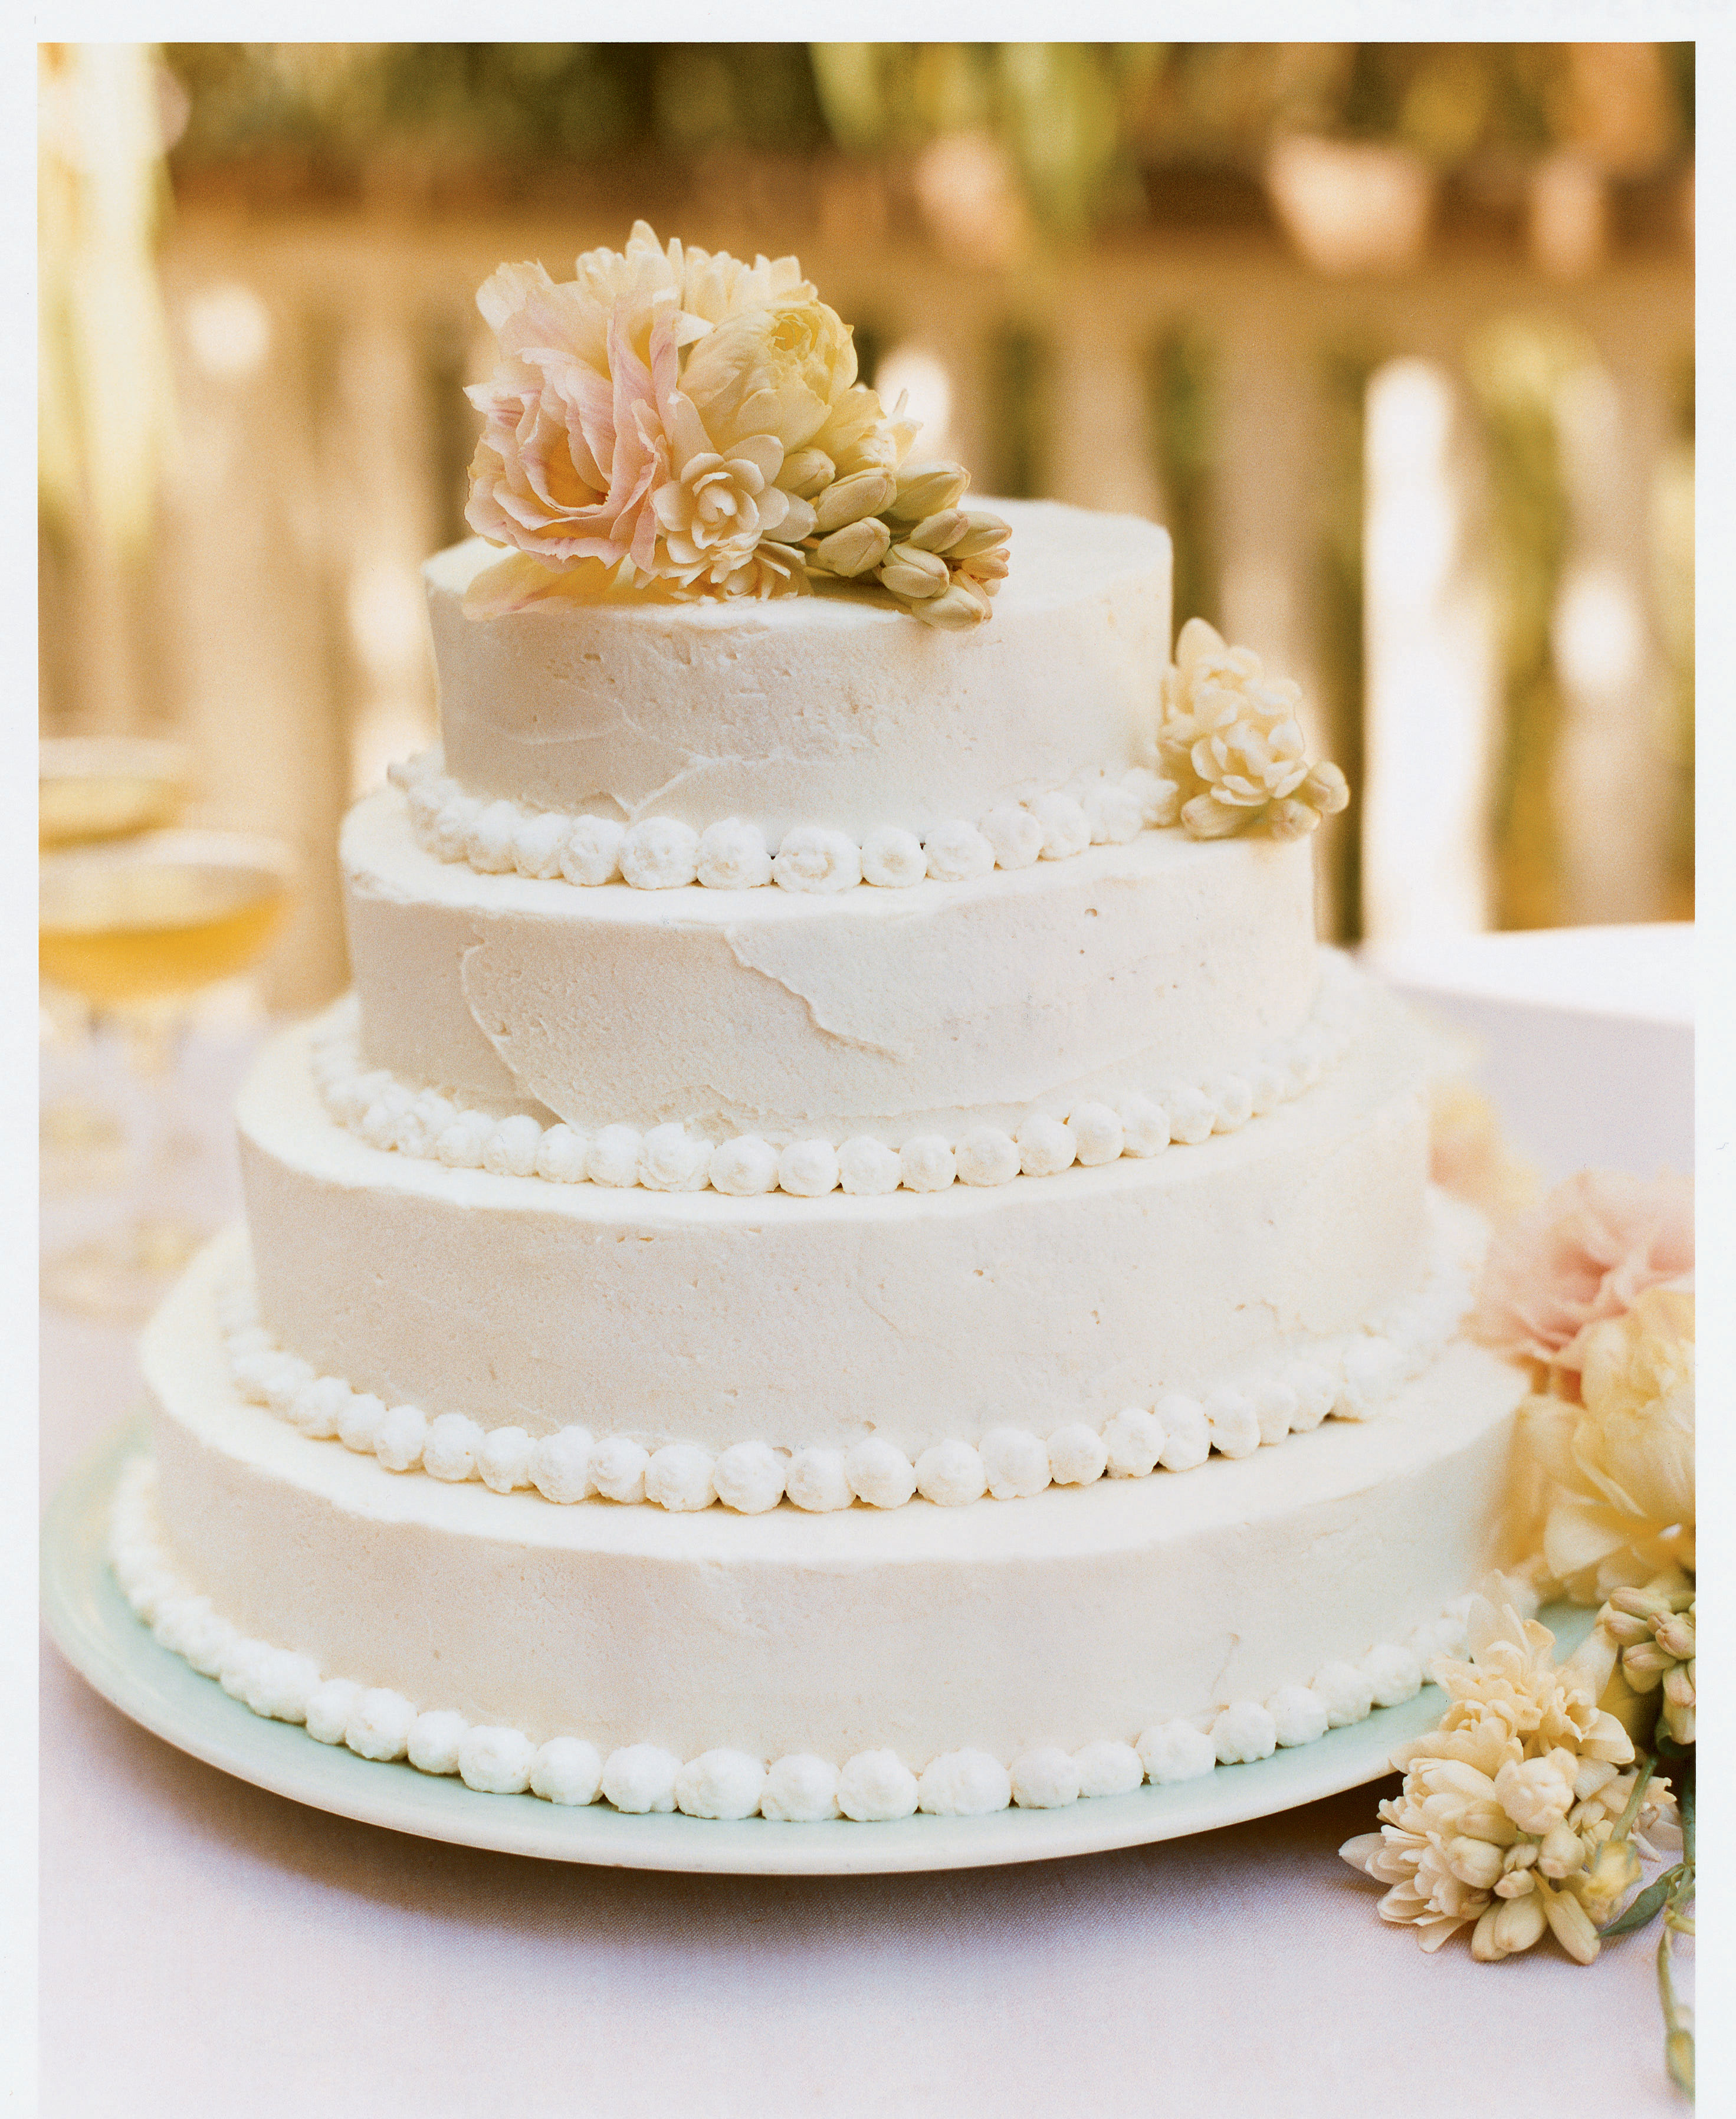 How to Assemble a Tiered Wedding Cake